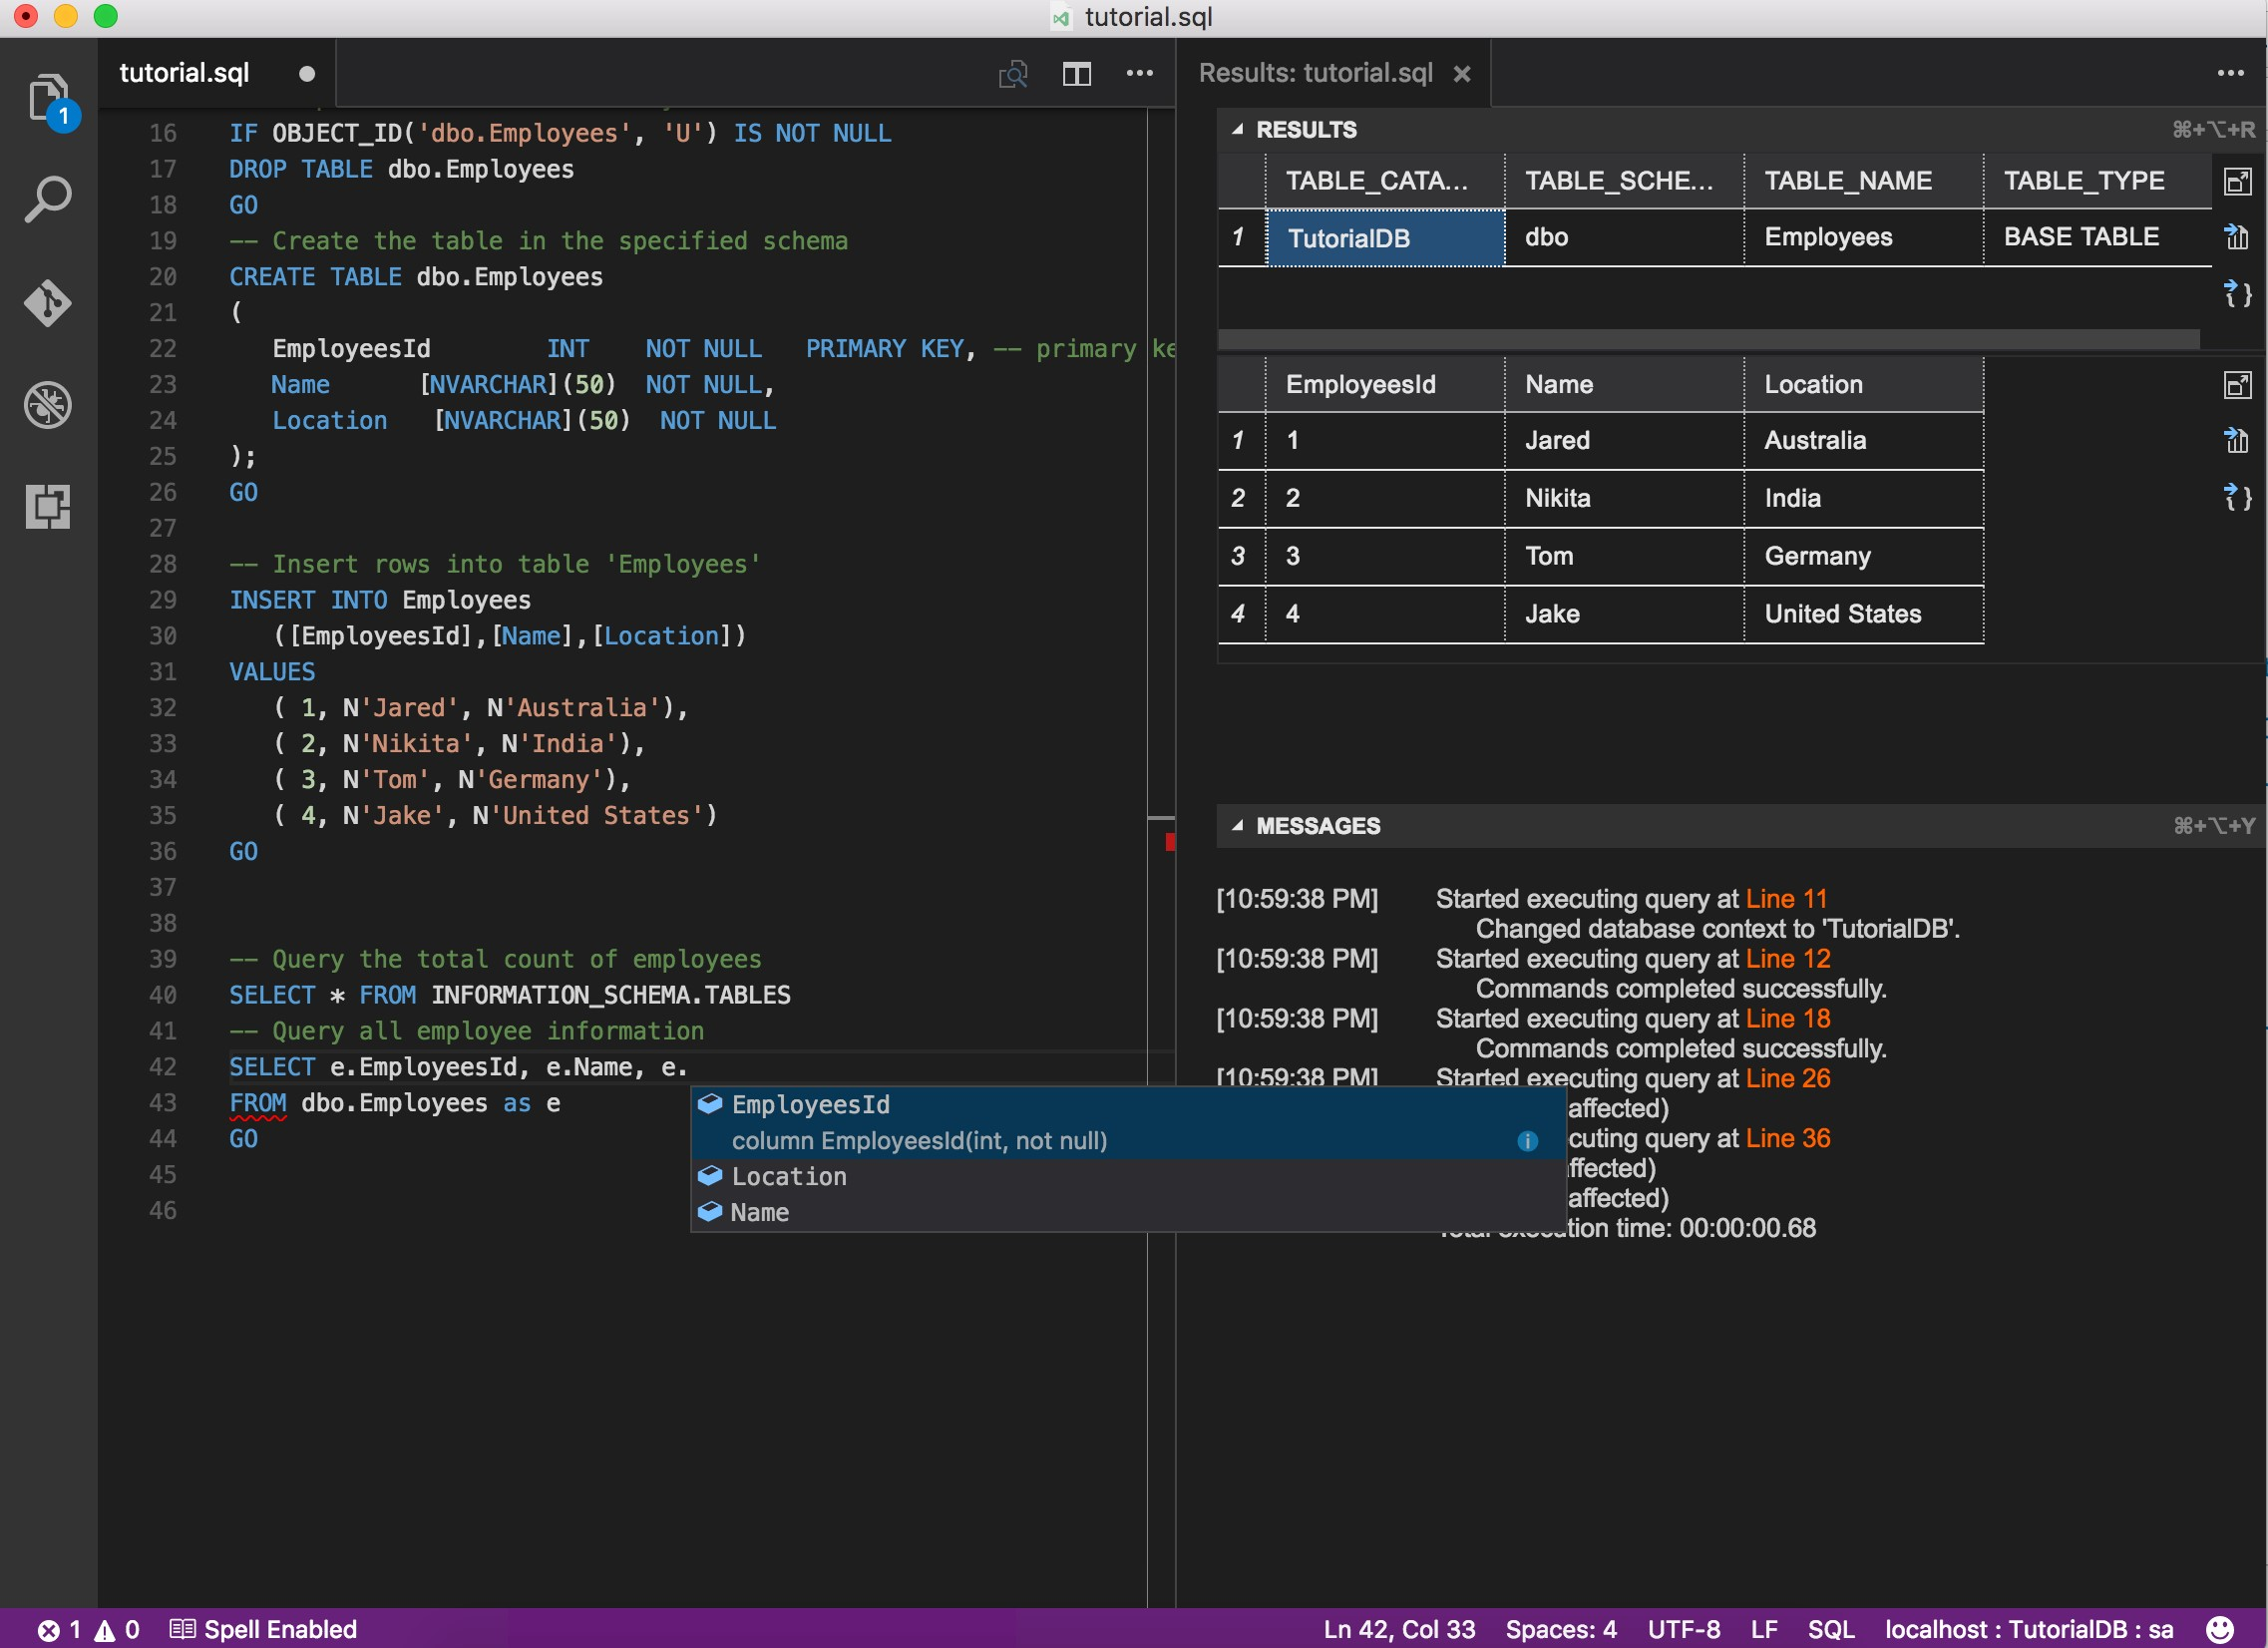 how to make visual studio reformat code